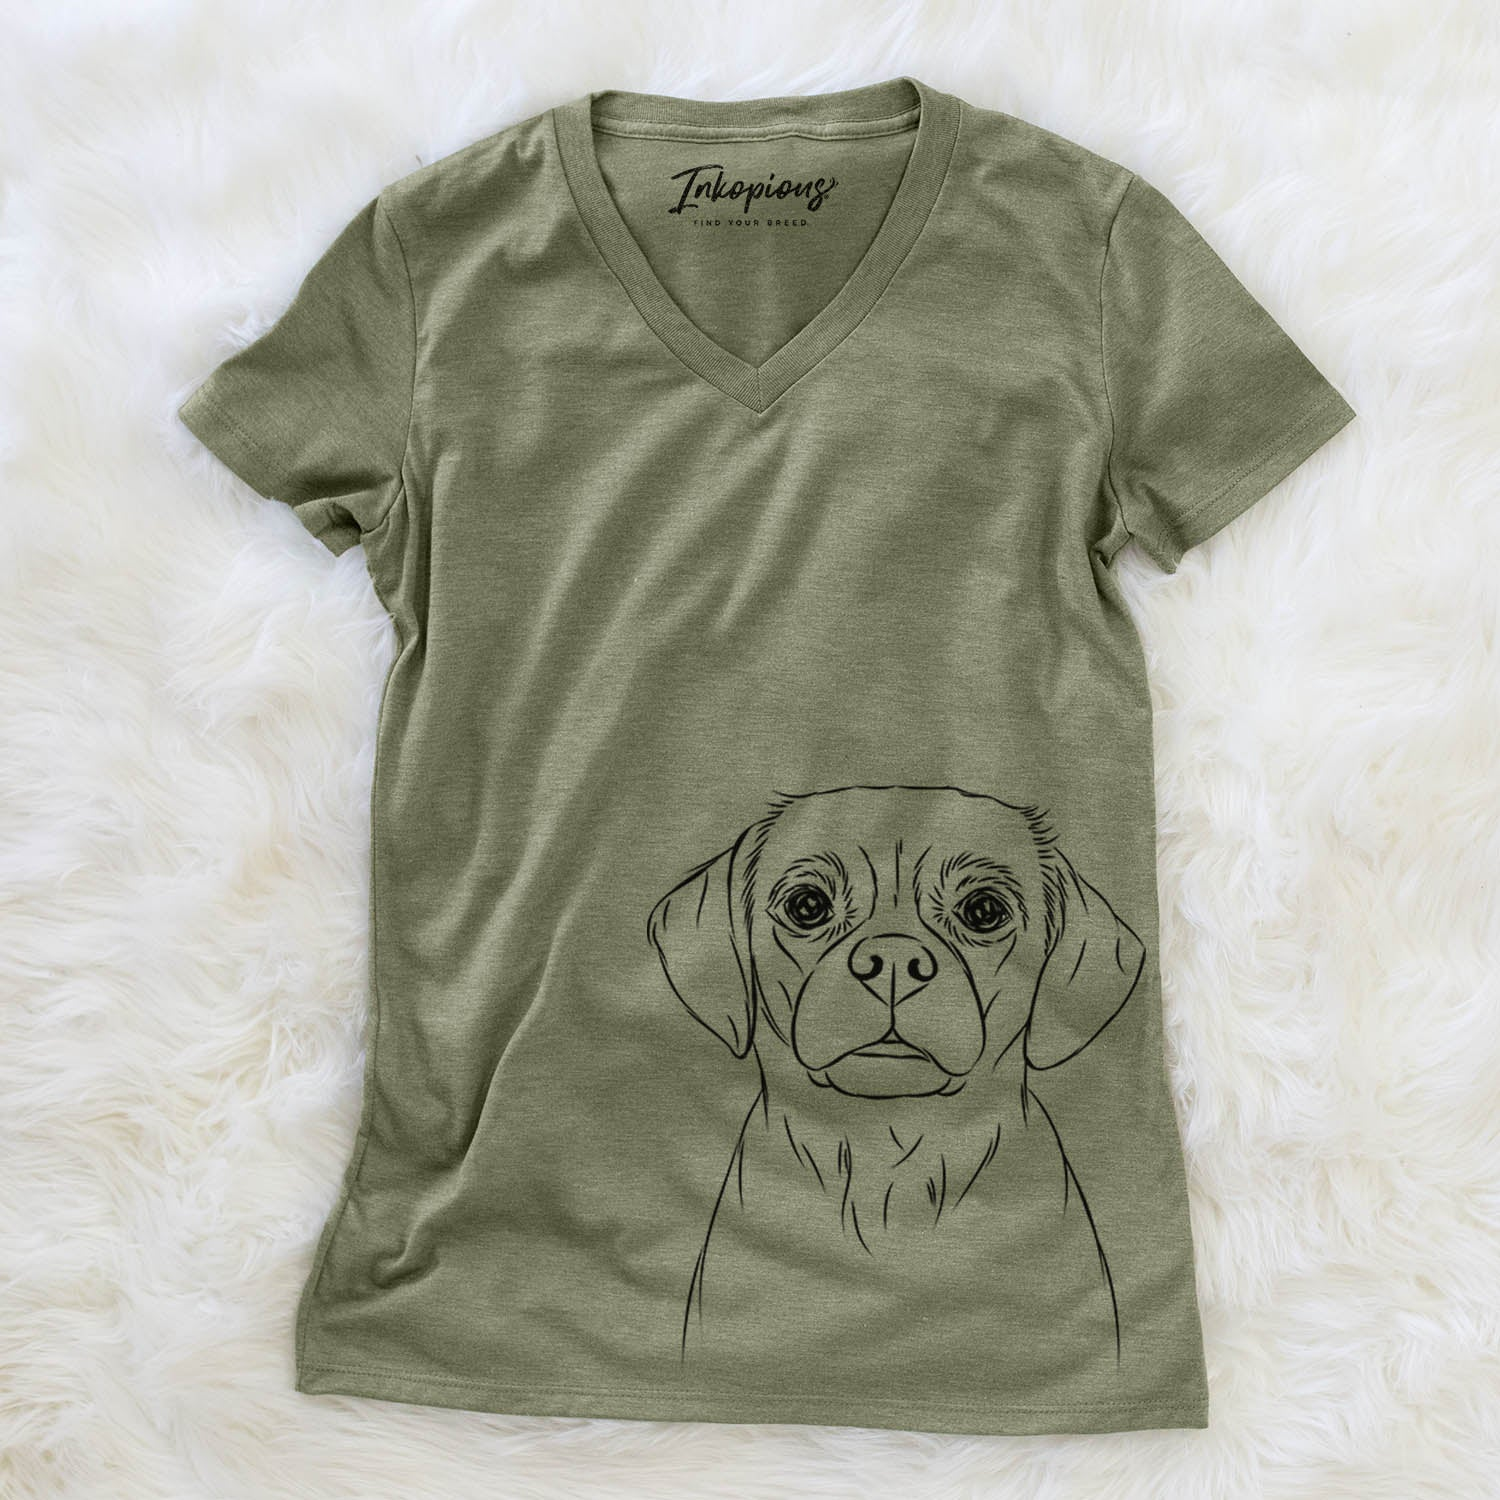 Popcorn the Puggle - Women's Modern Fit V-neck Shirt